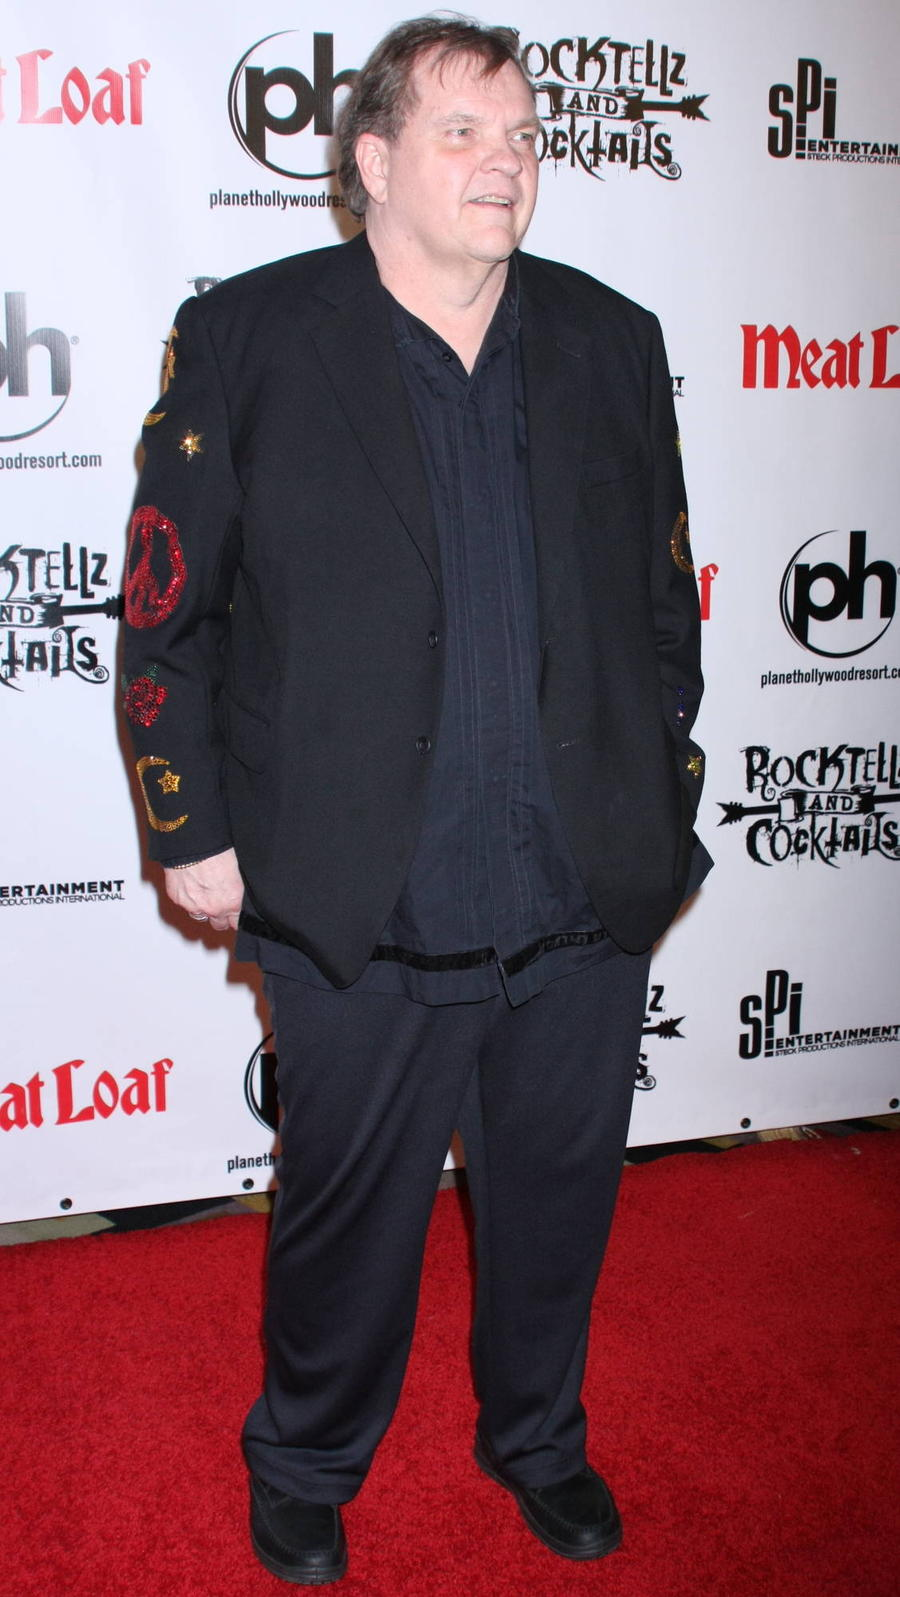 Teary-eyed Meat Loaf Accepts Q Hero Award